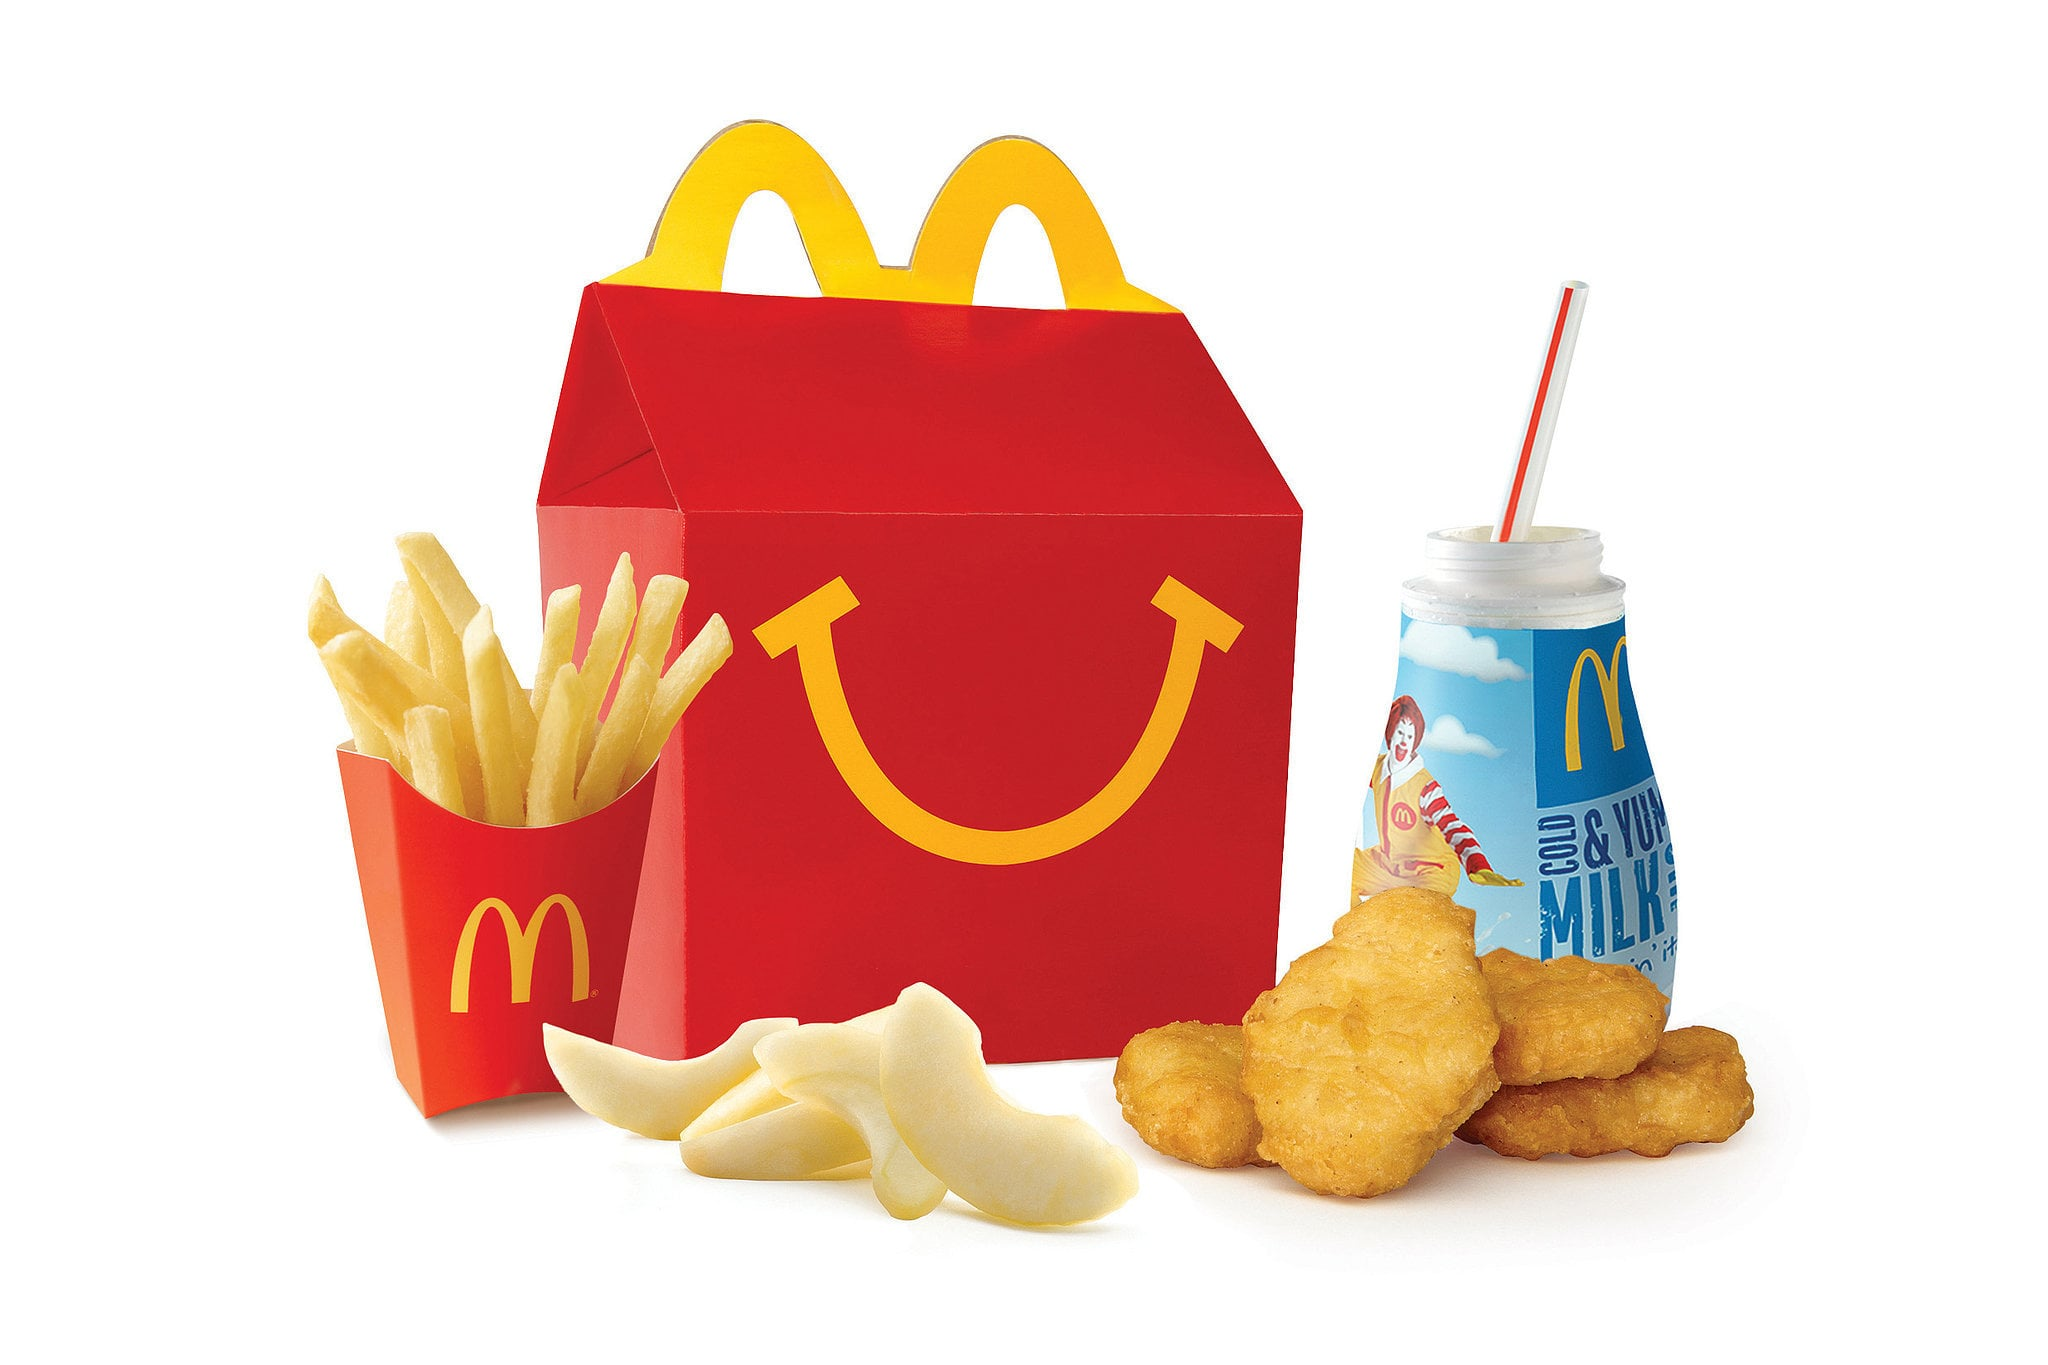 Could This Be the End of McDonald's Gender-Specific Happy Meals?